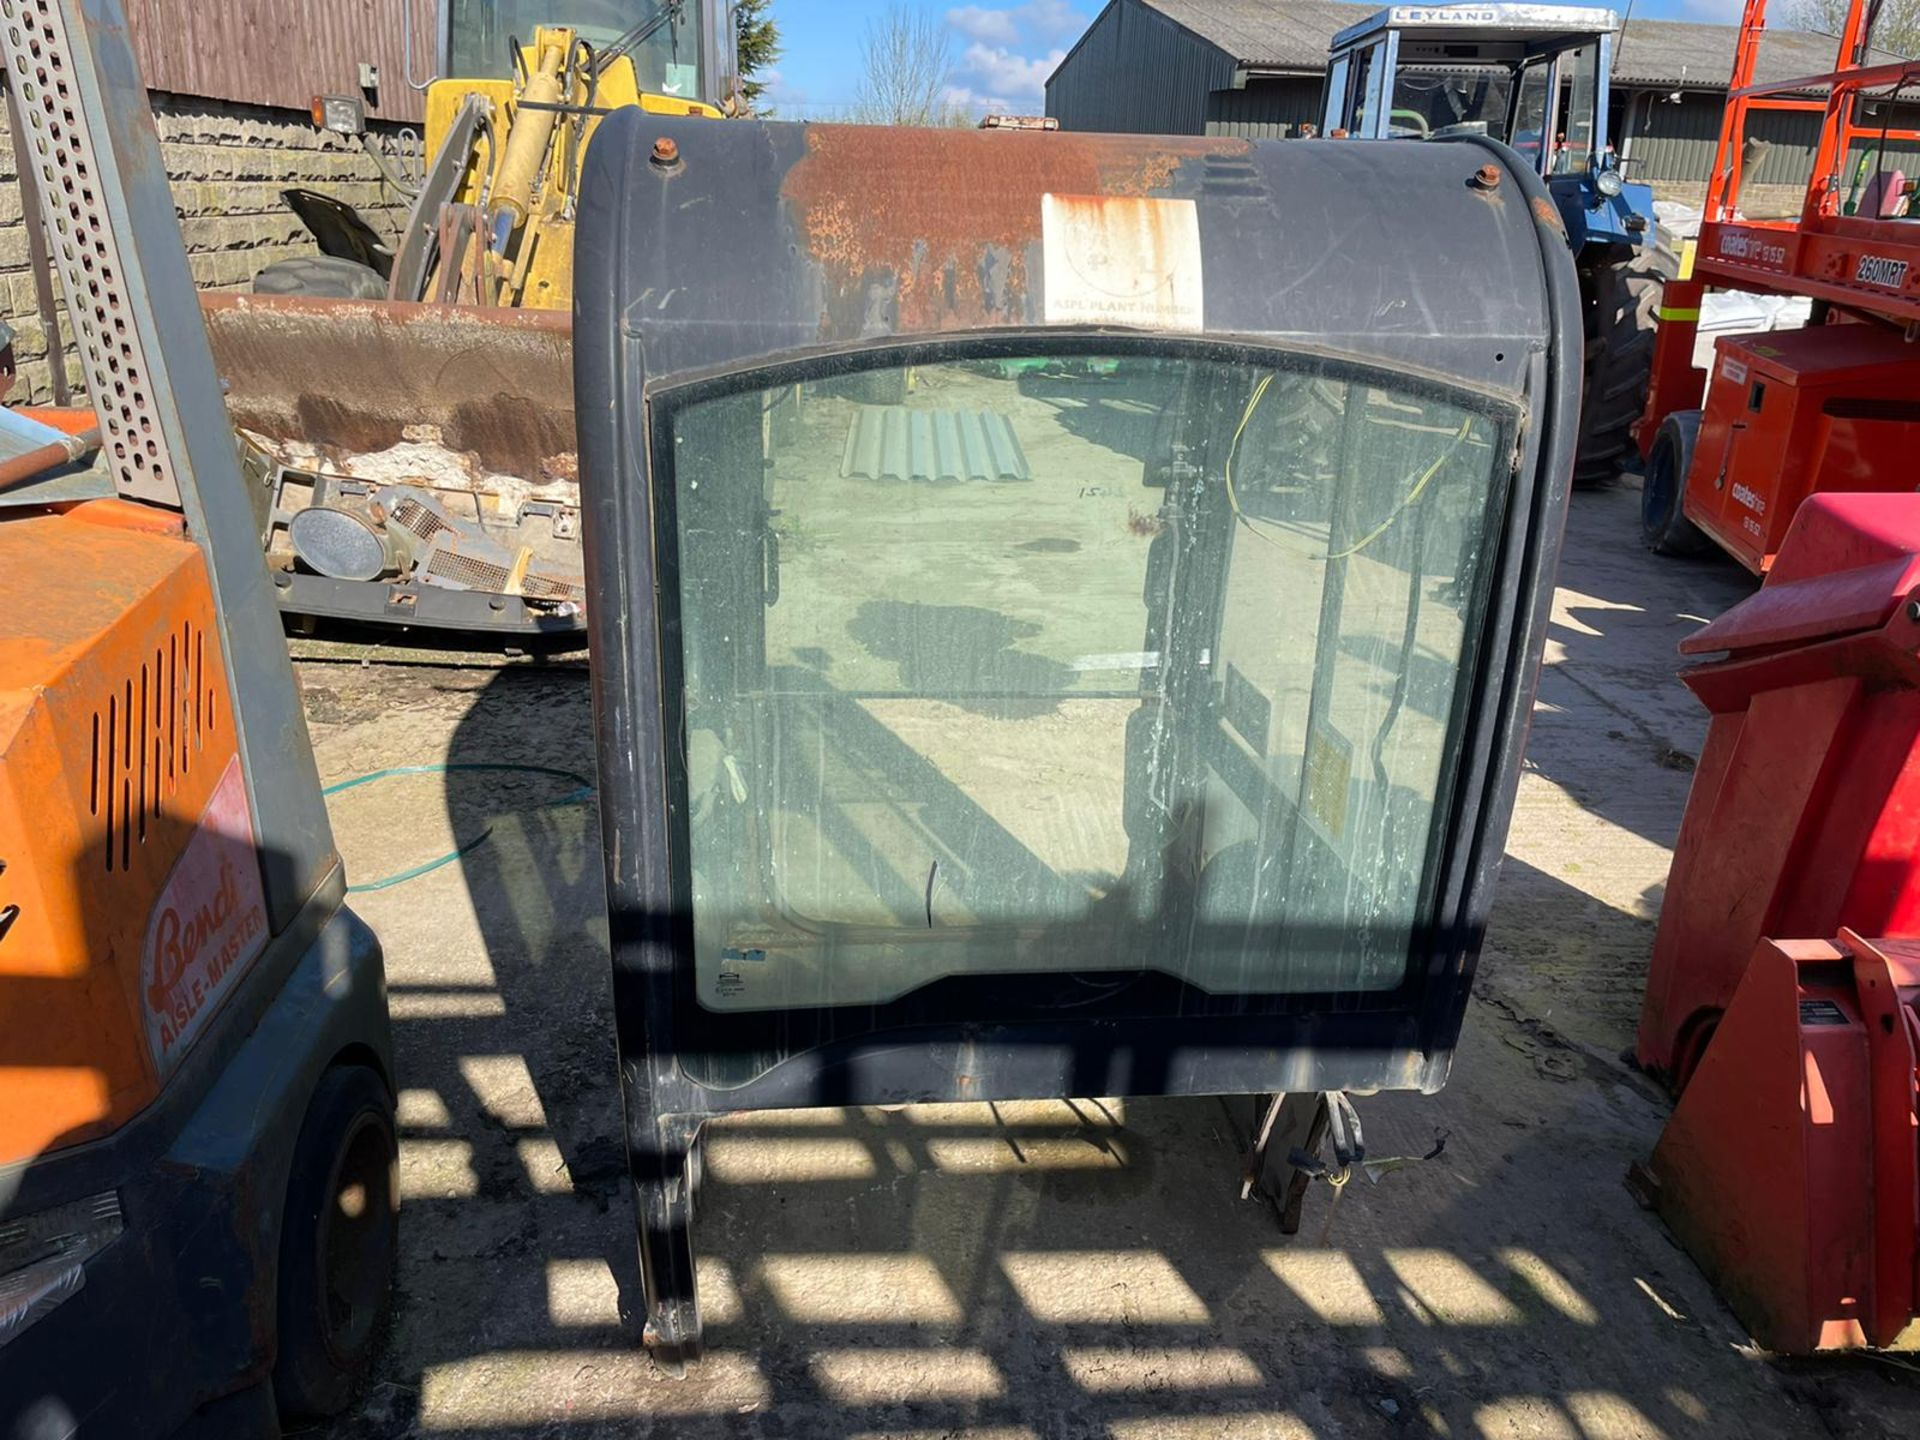 8025/8030/8035 CAB, ALL IN TACT, DOOR IS INCLUDED *PLUS VAT* - Image 3 of 8